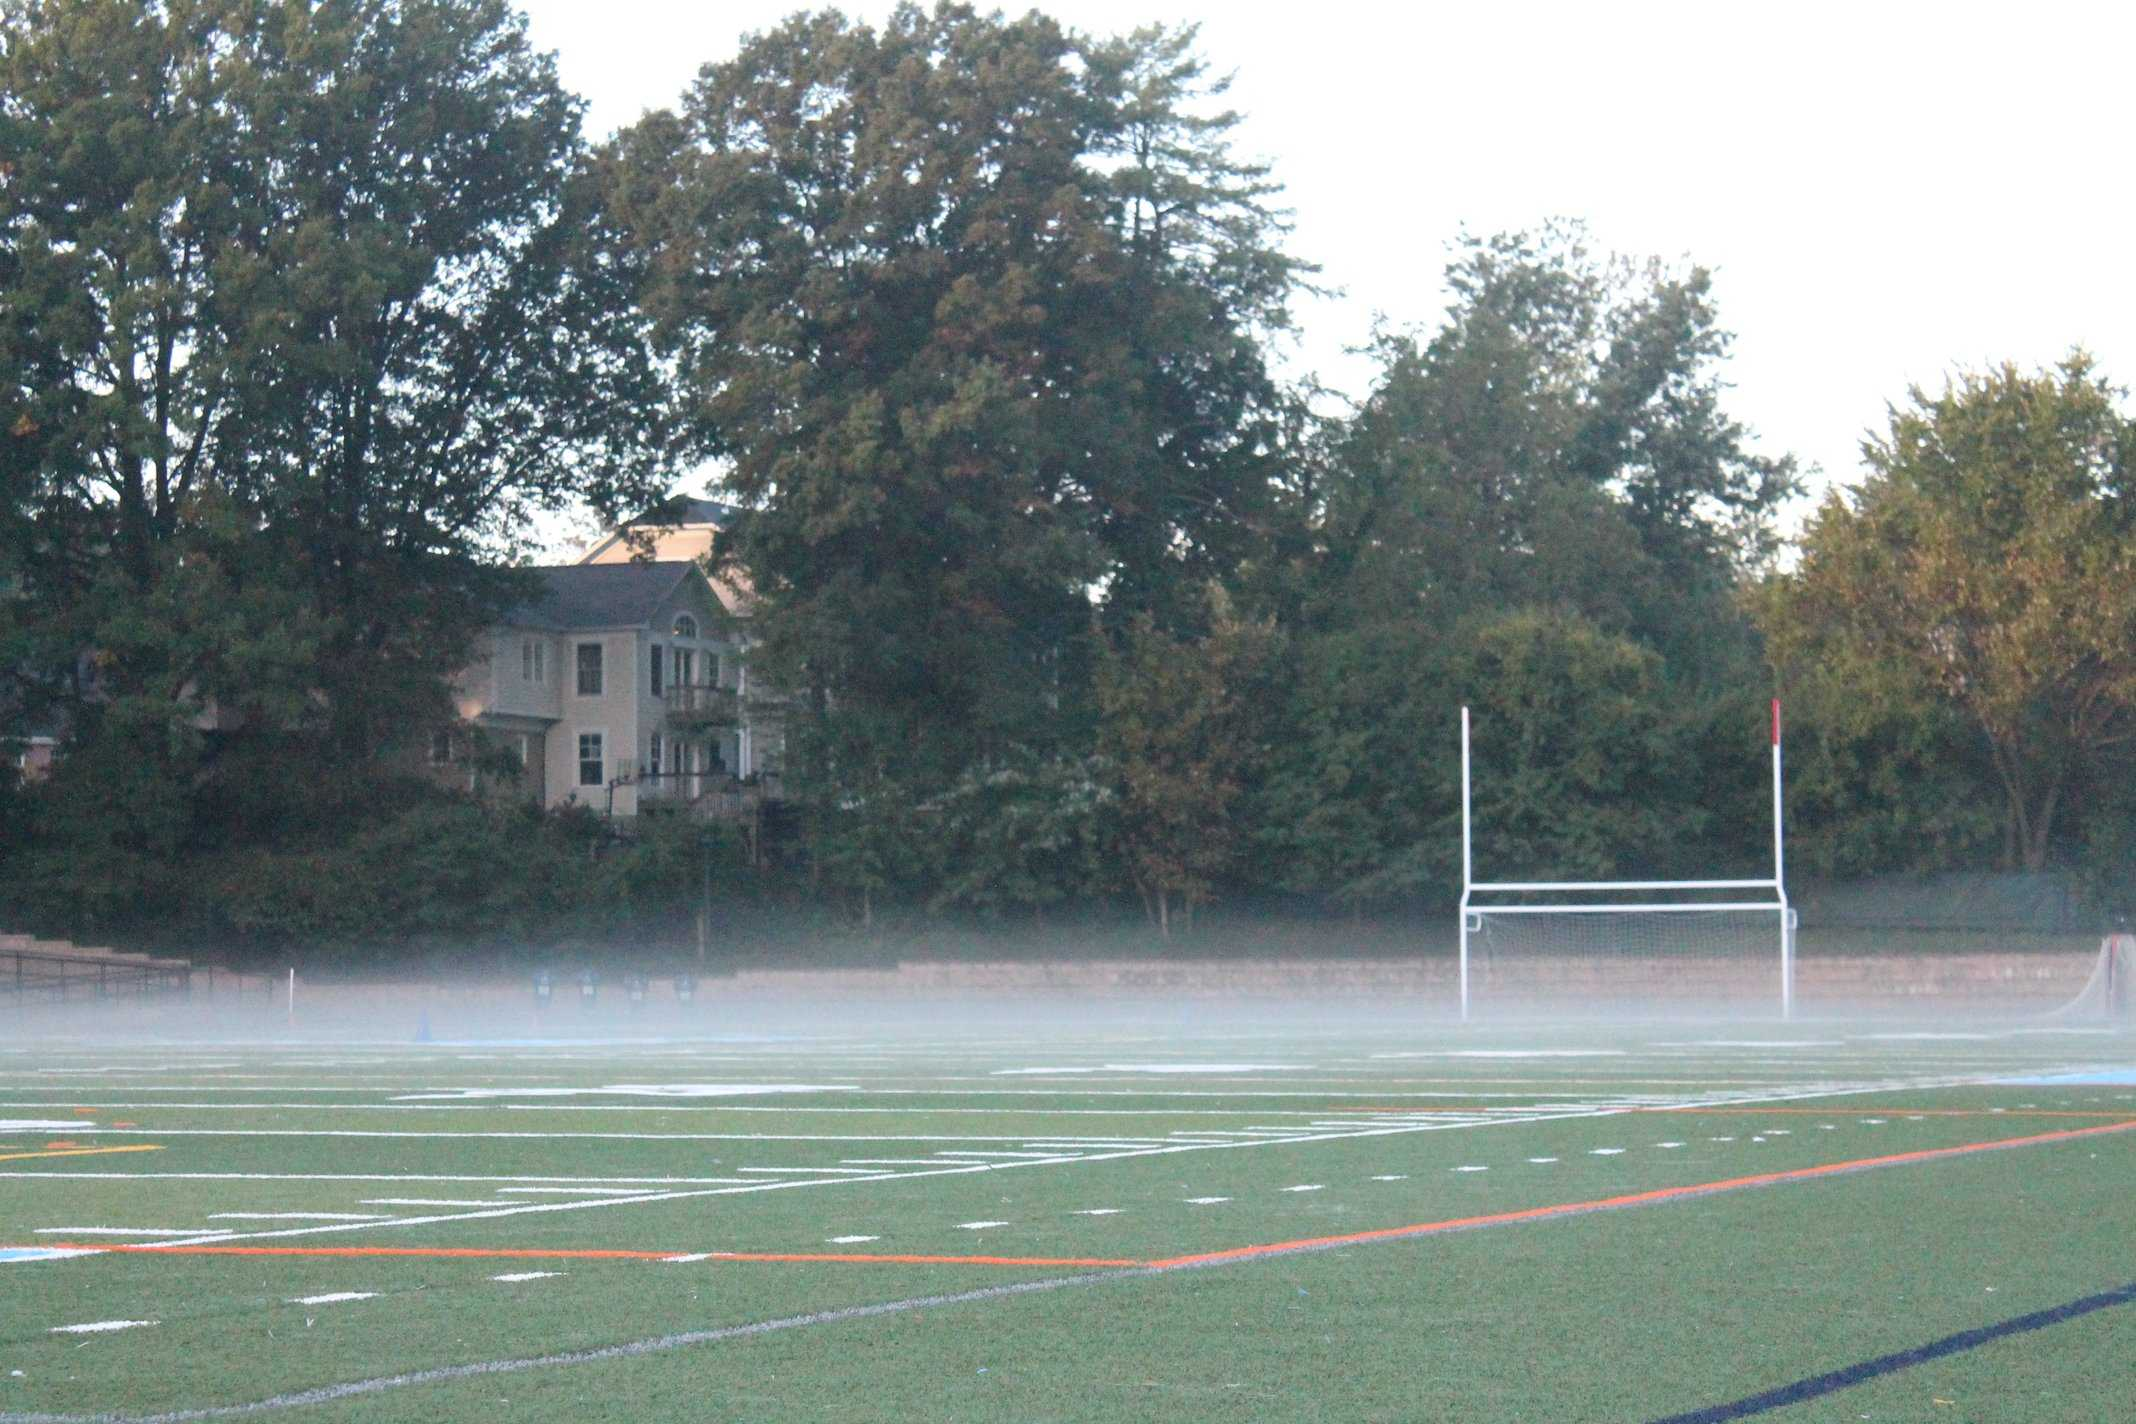 The Yorktown football field, where Friday night lights comes to life